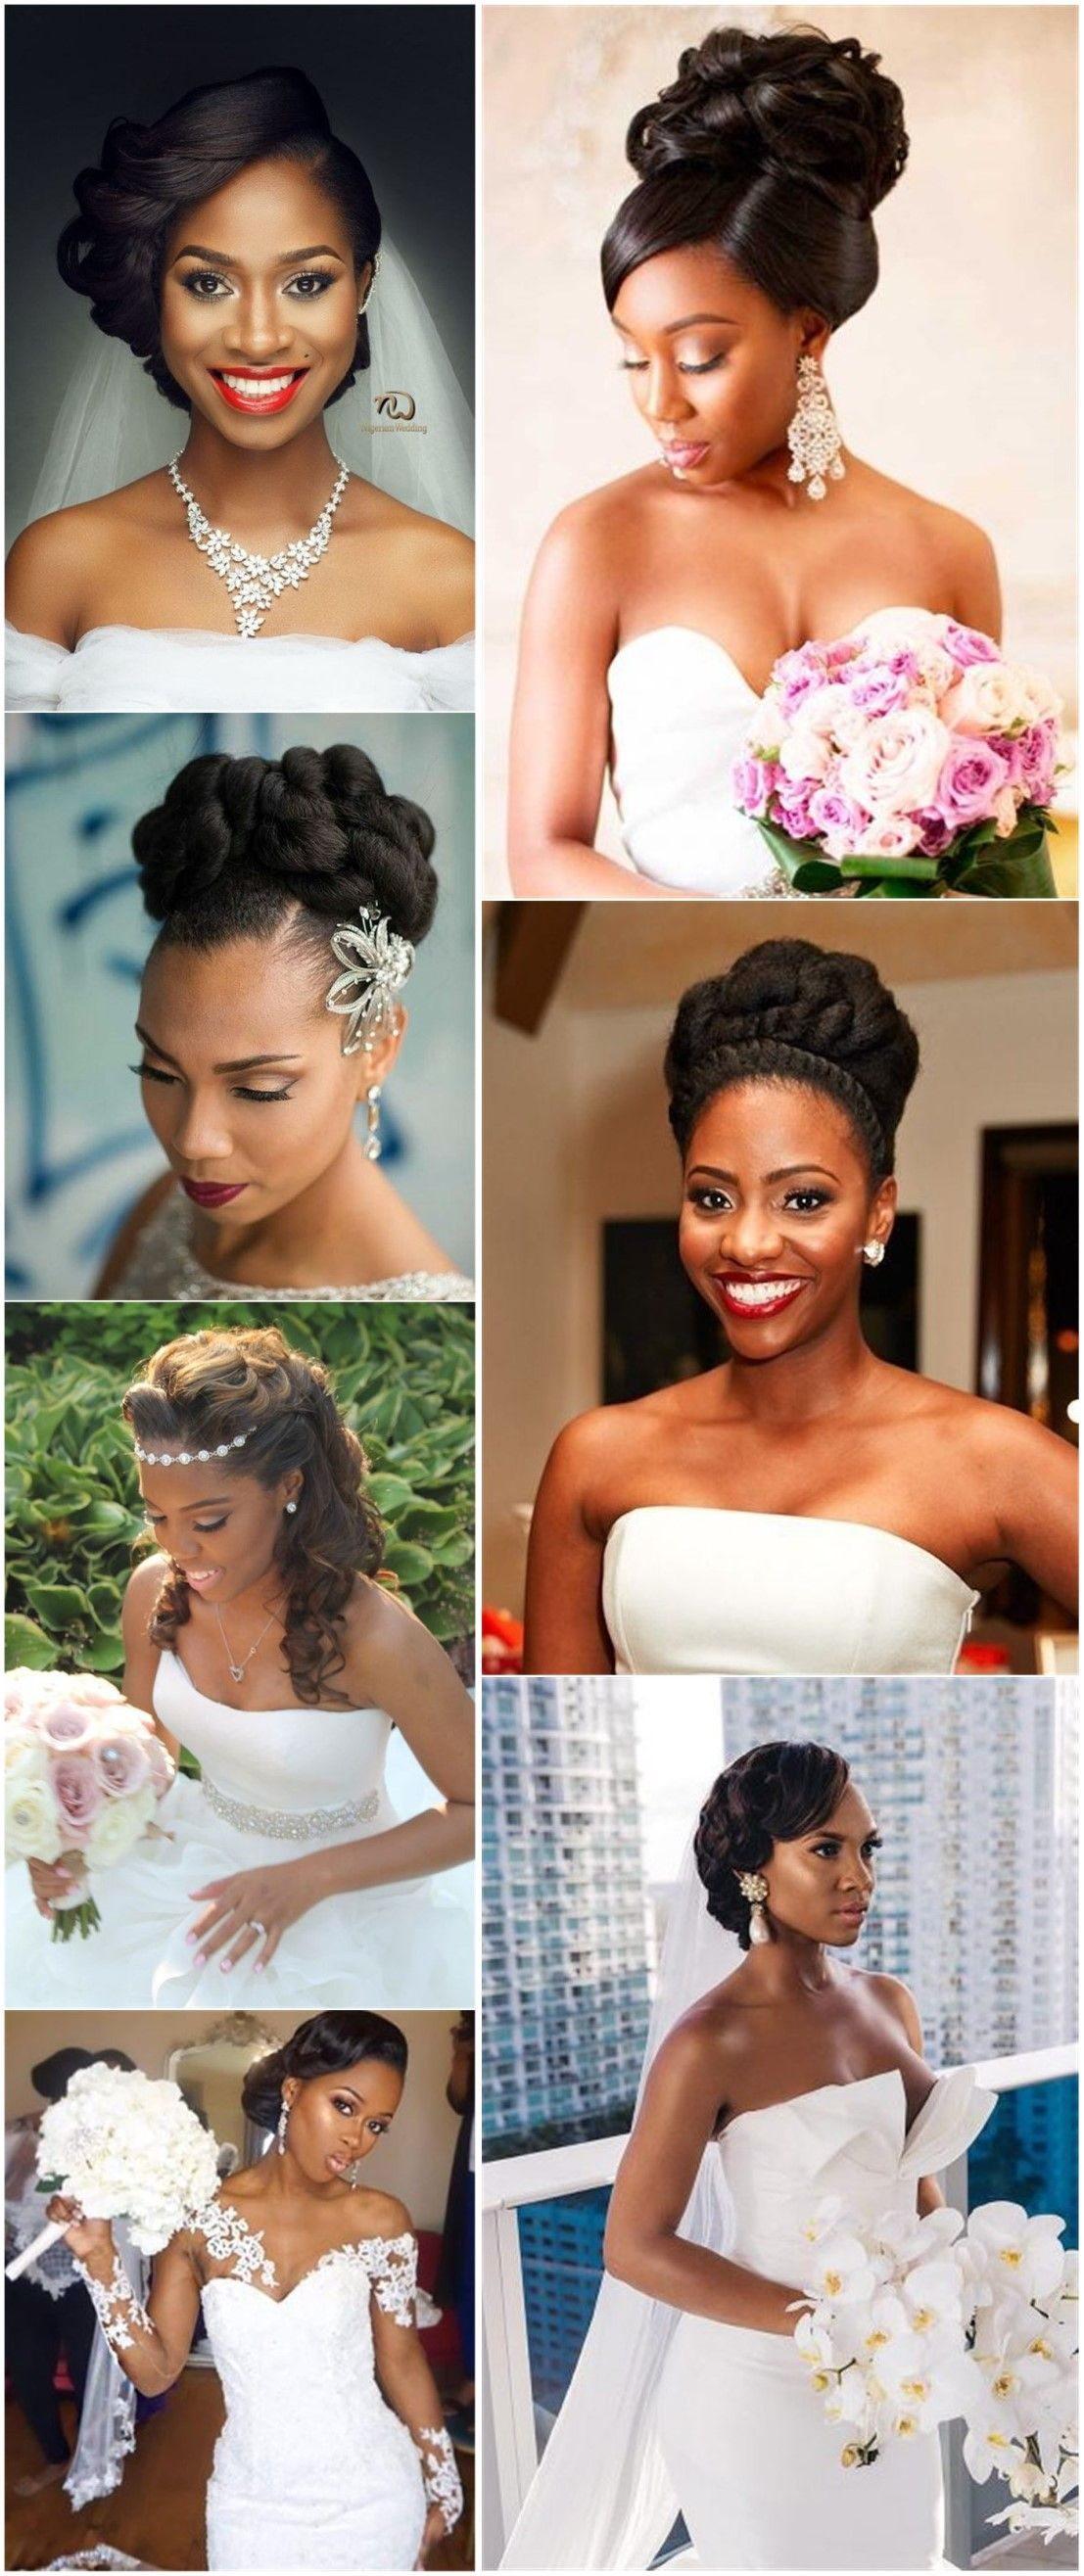 20 Wedding Updo Hairstyles For Black Brides Weddinginclude Black Wedding Hairstyles Bride Hairstyles Wedding Hairstyles Updo